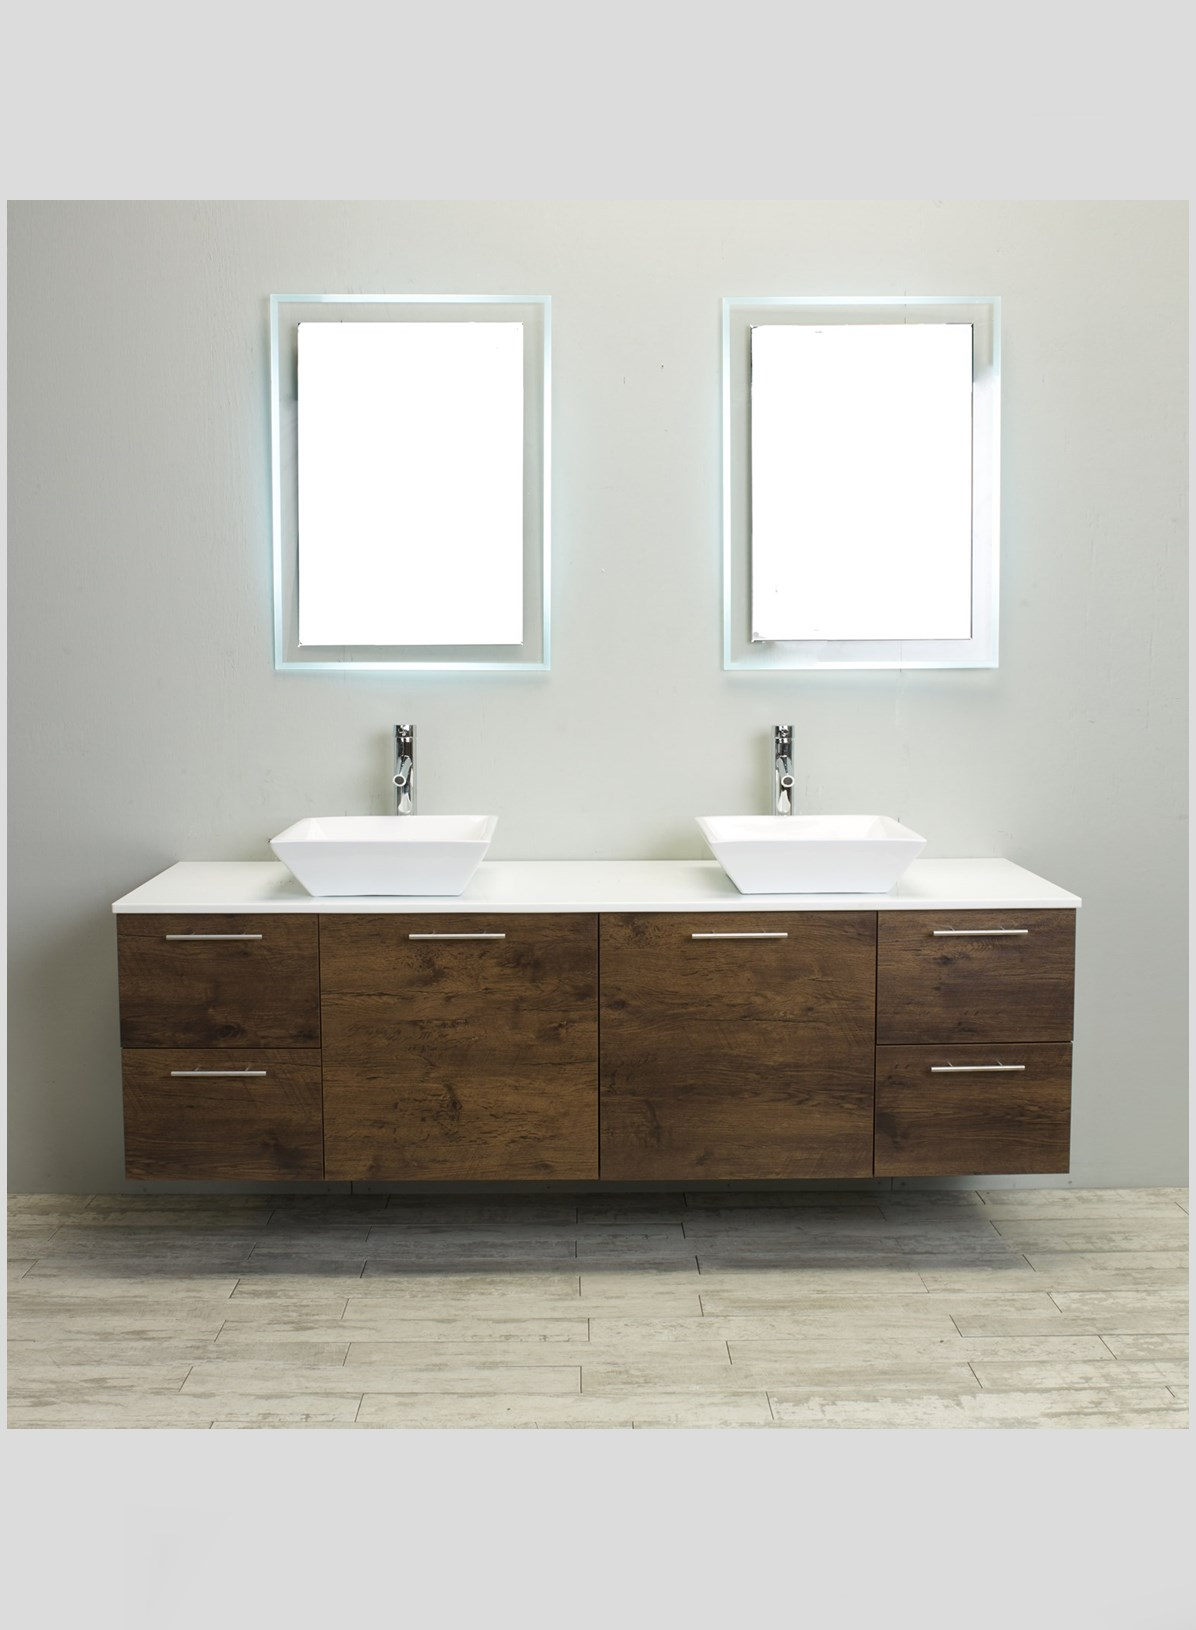 Altamarea Unusual Wall Hung Bathroom Vanities with Sink photo - 10